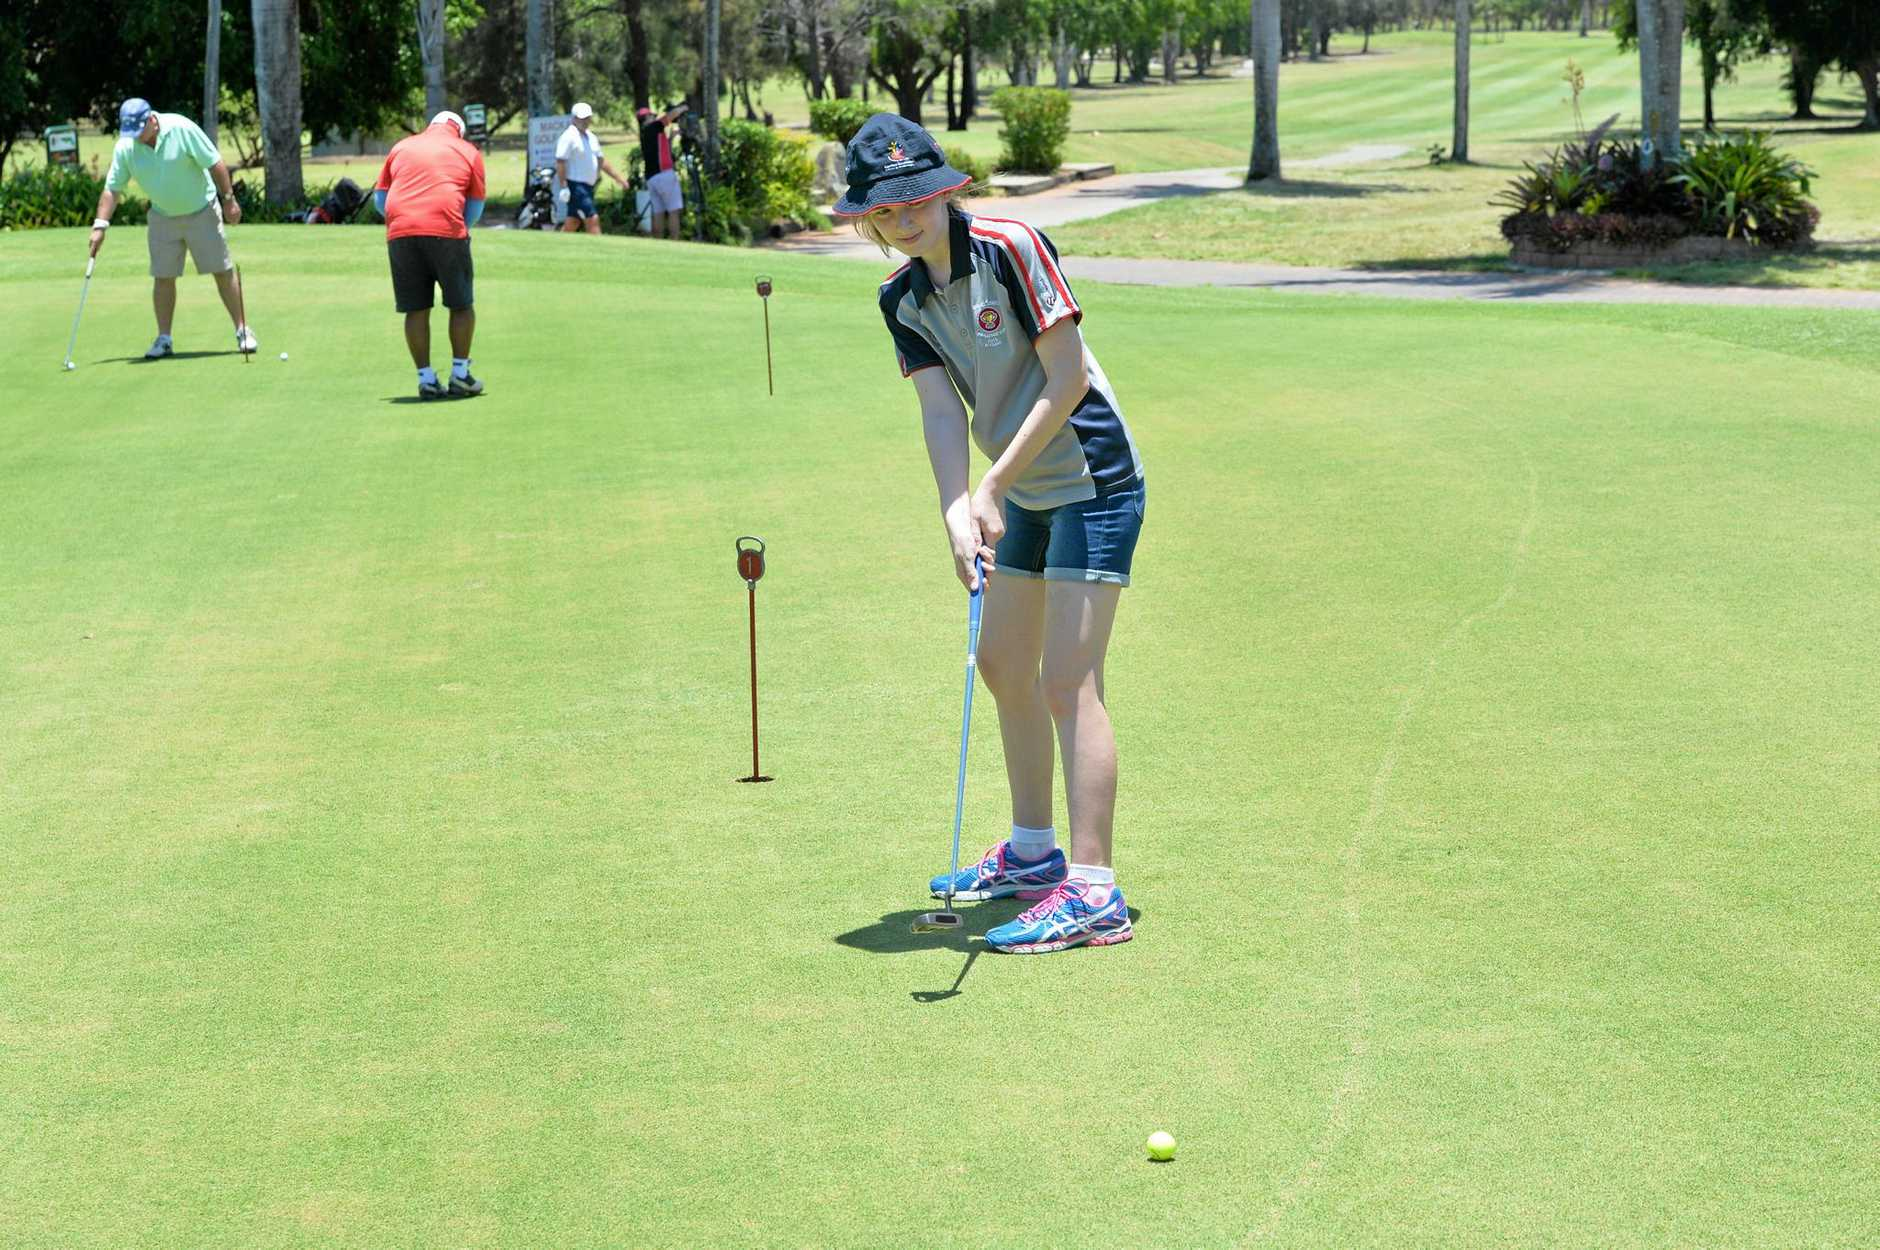 Isabella Dowden putts close to the flag.